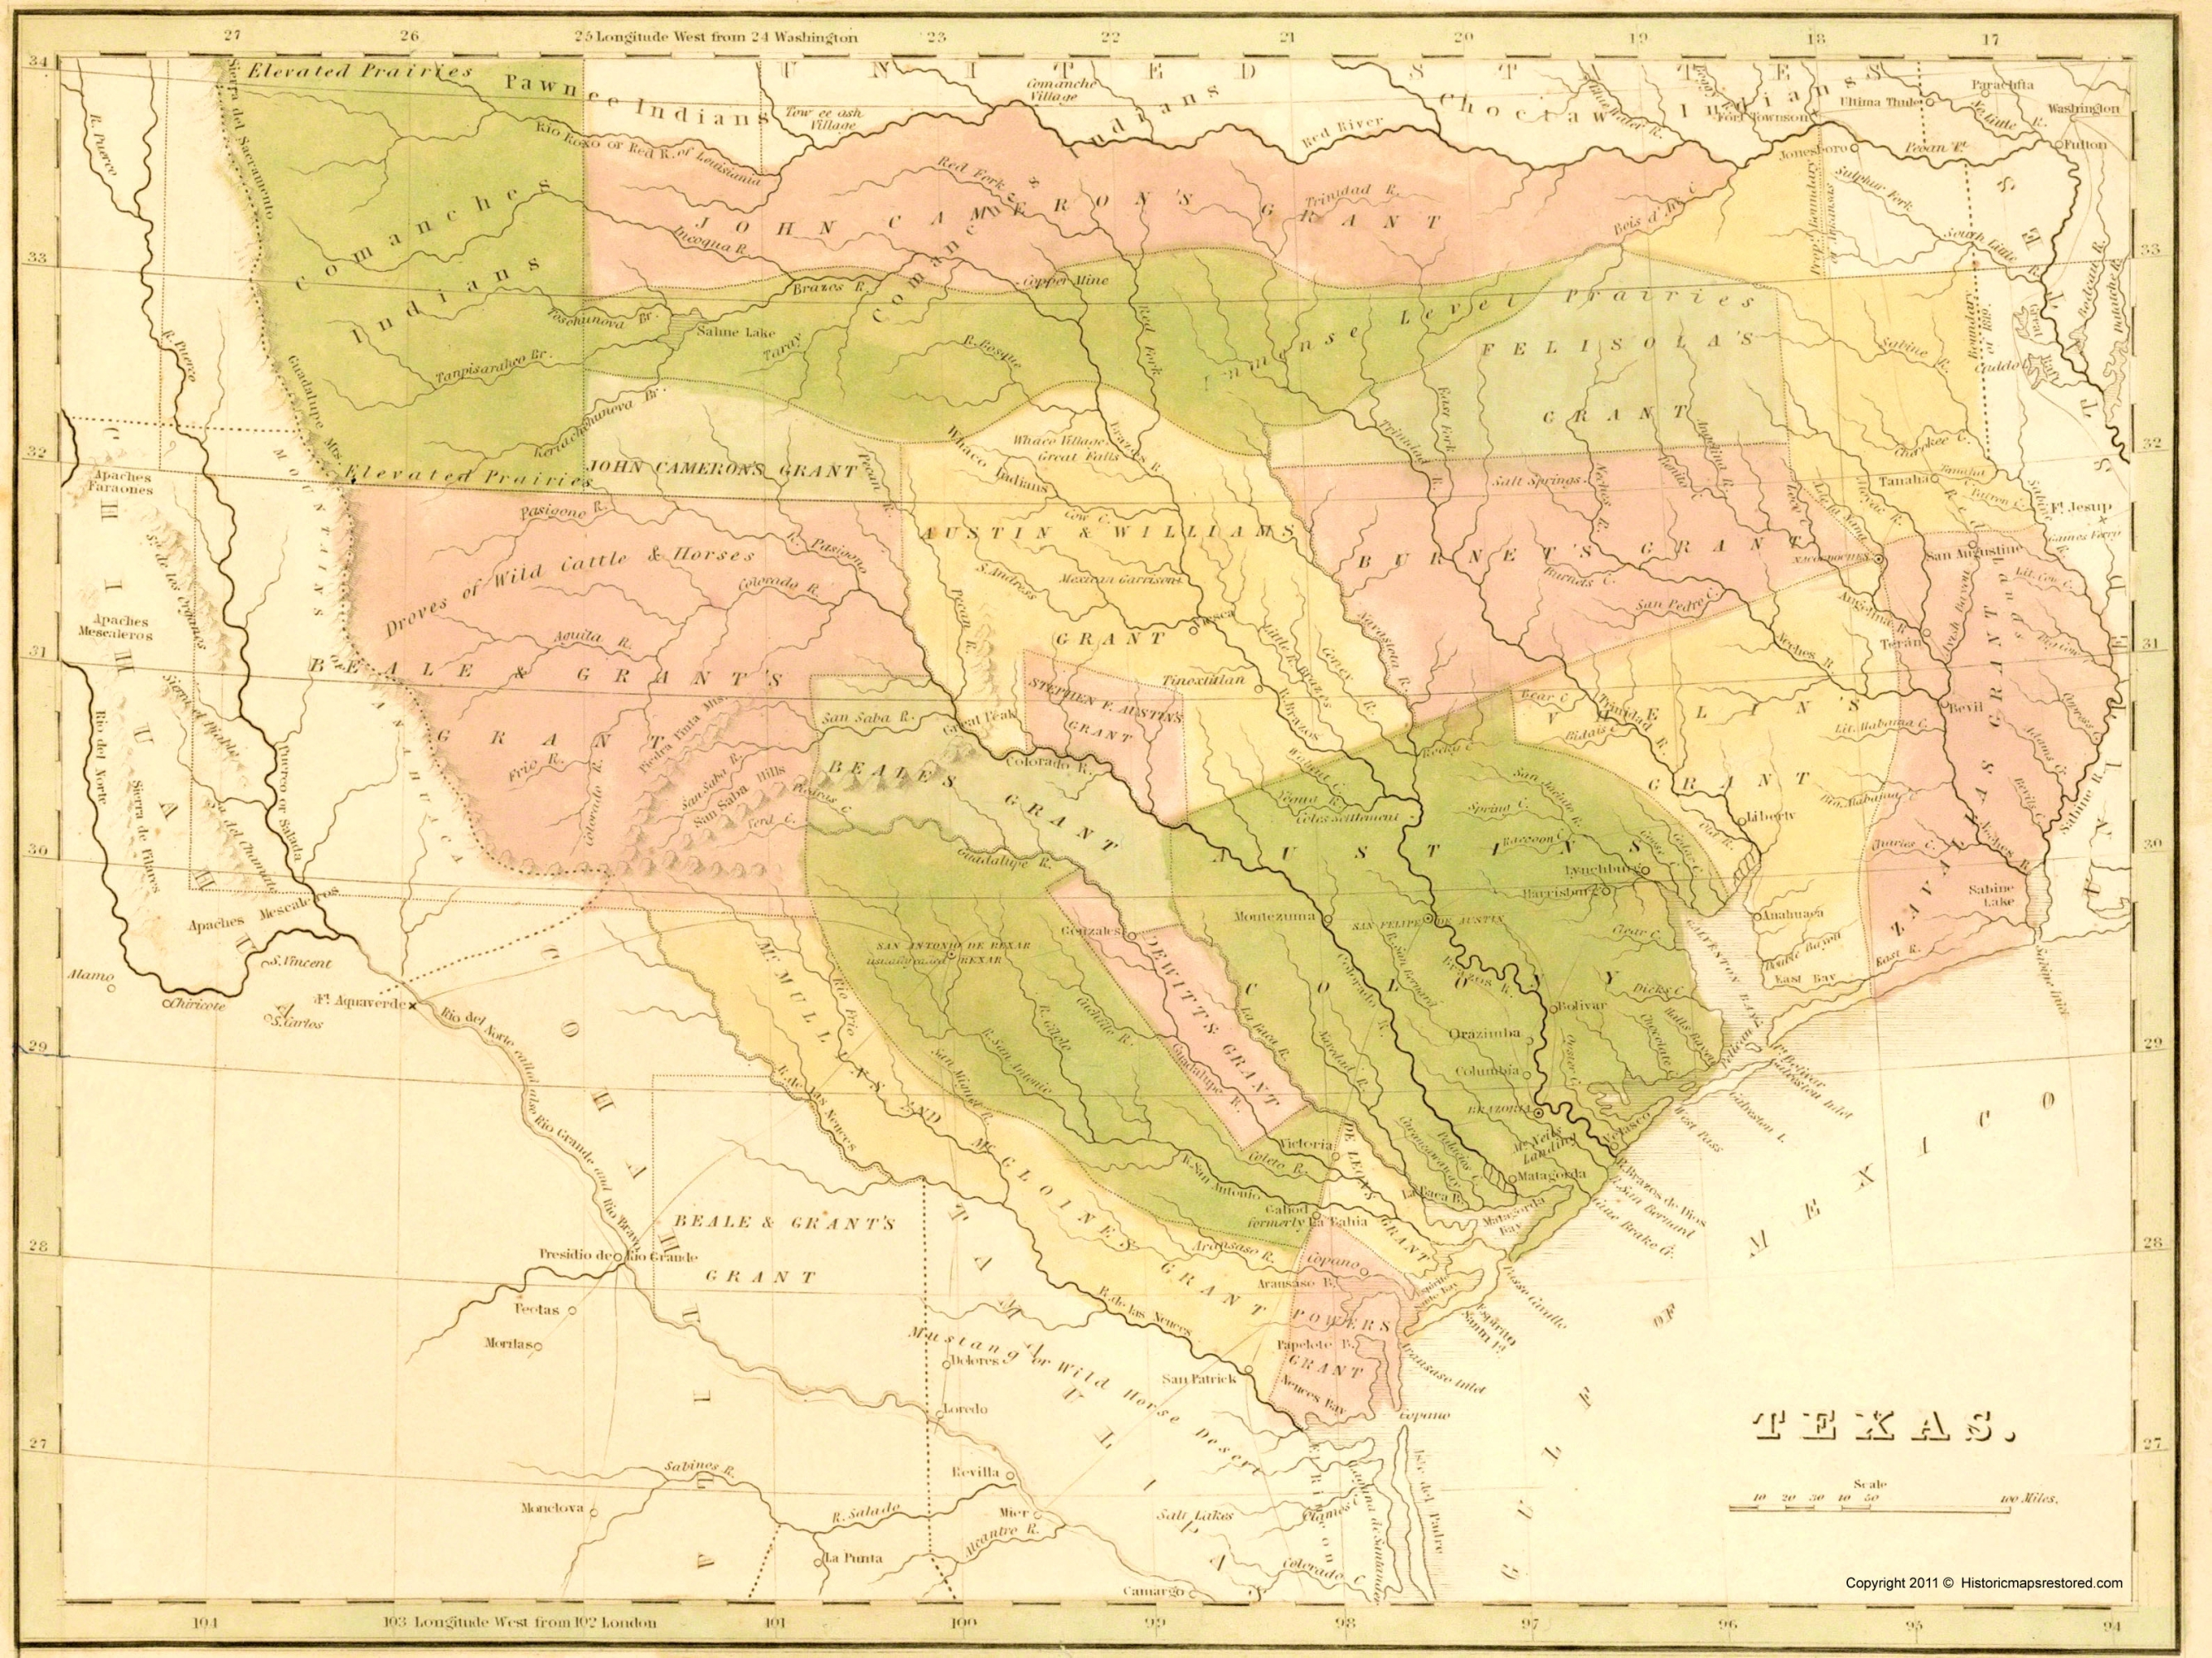 Old Map Texas With Grants And Indian Territory - Map of colorado river in texas